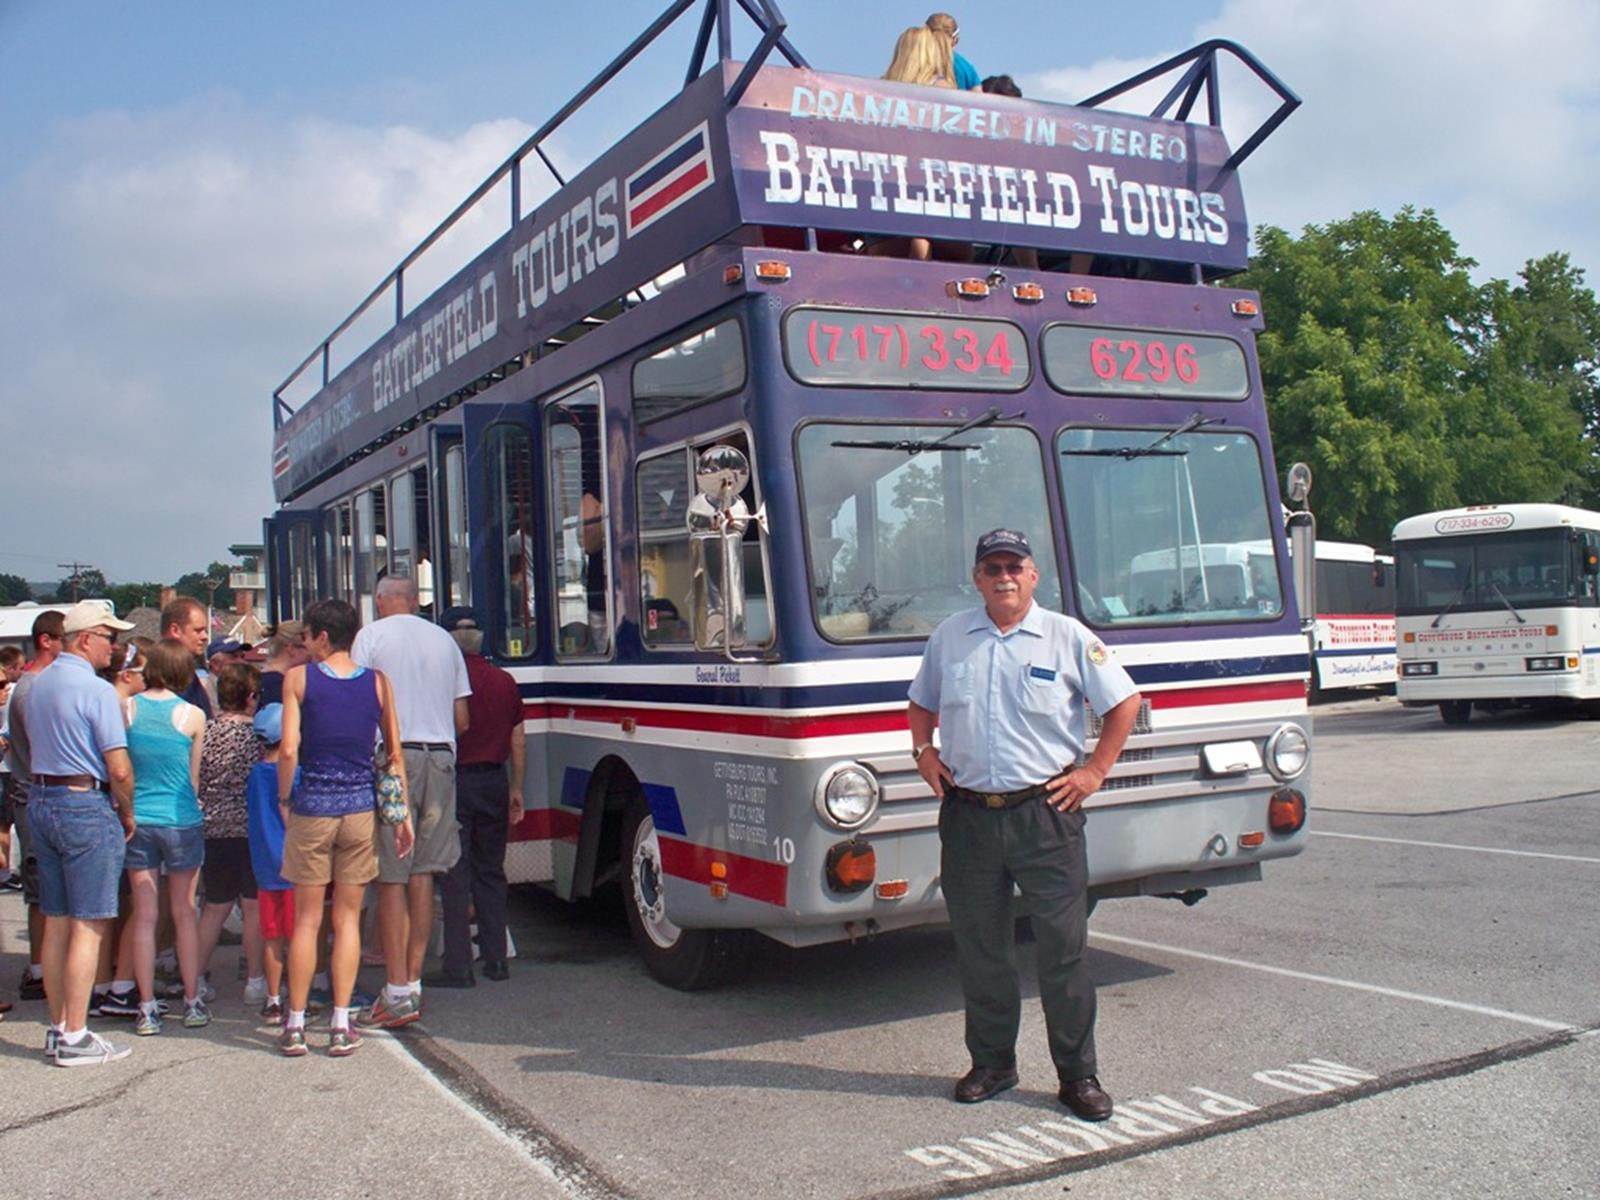 A group getting ready to board the double-decker bus. Credit: Gettysburg Double Decker Bus